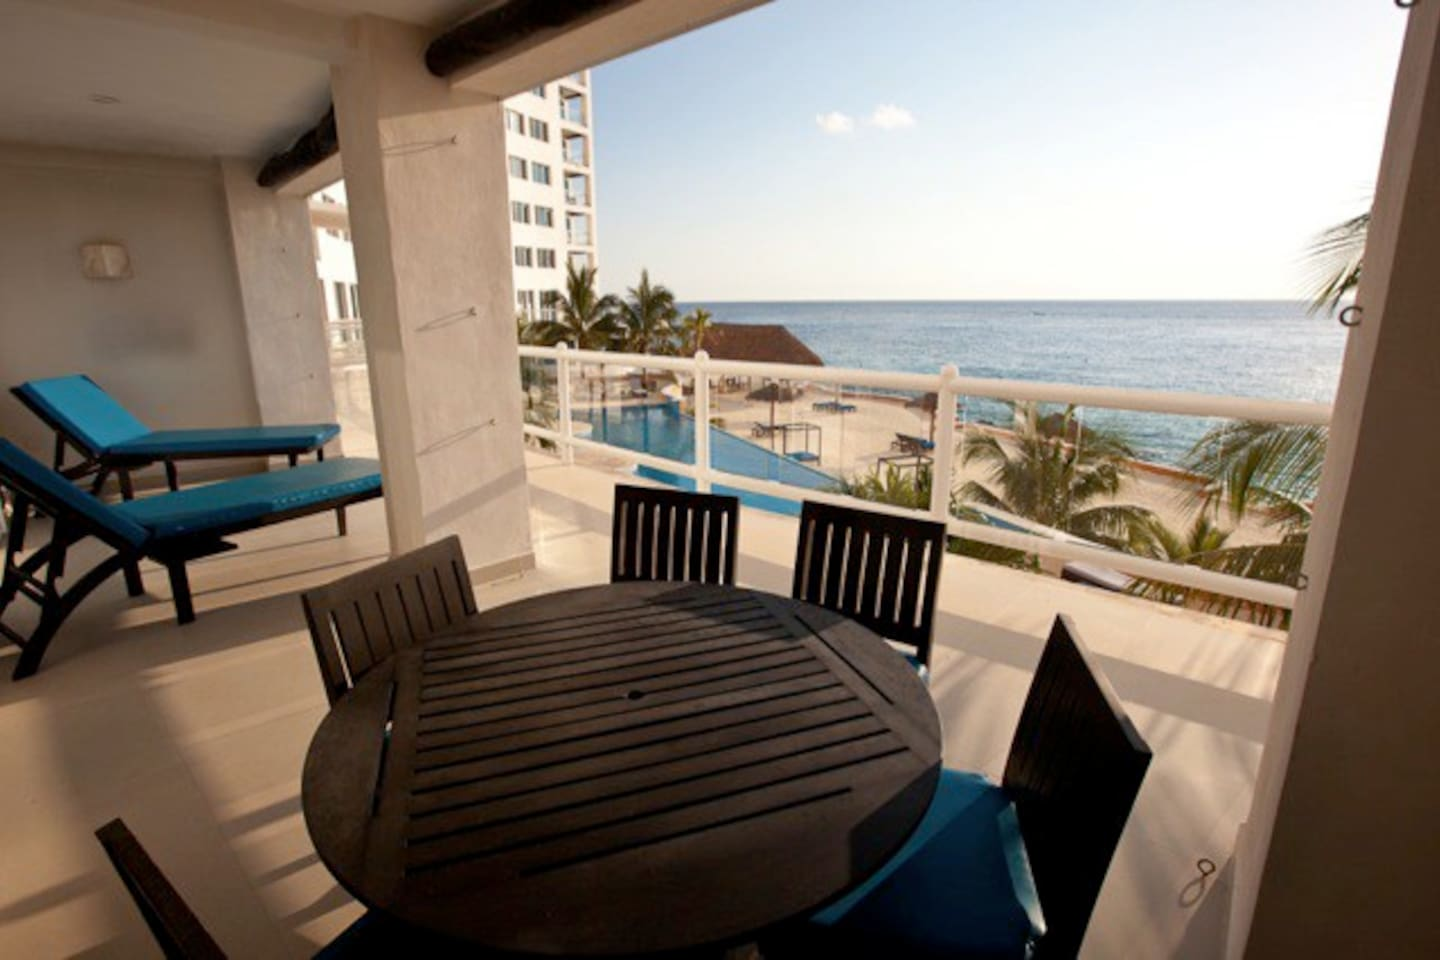 Large balcony stretches the length of the condo